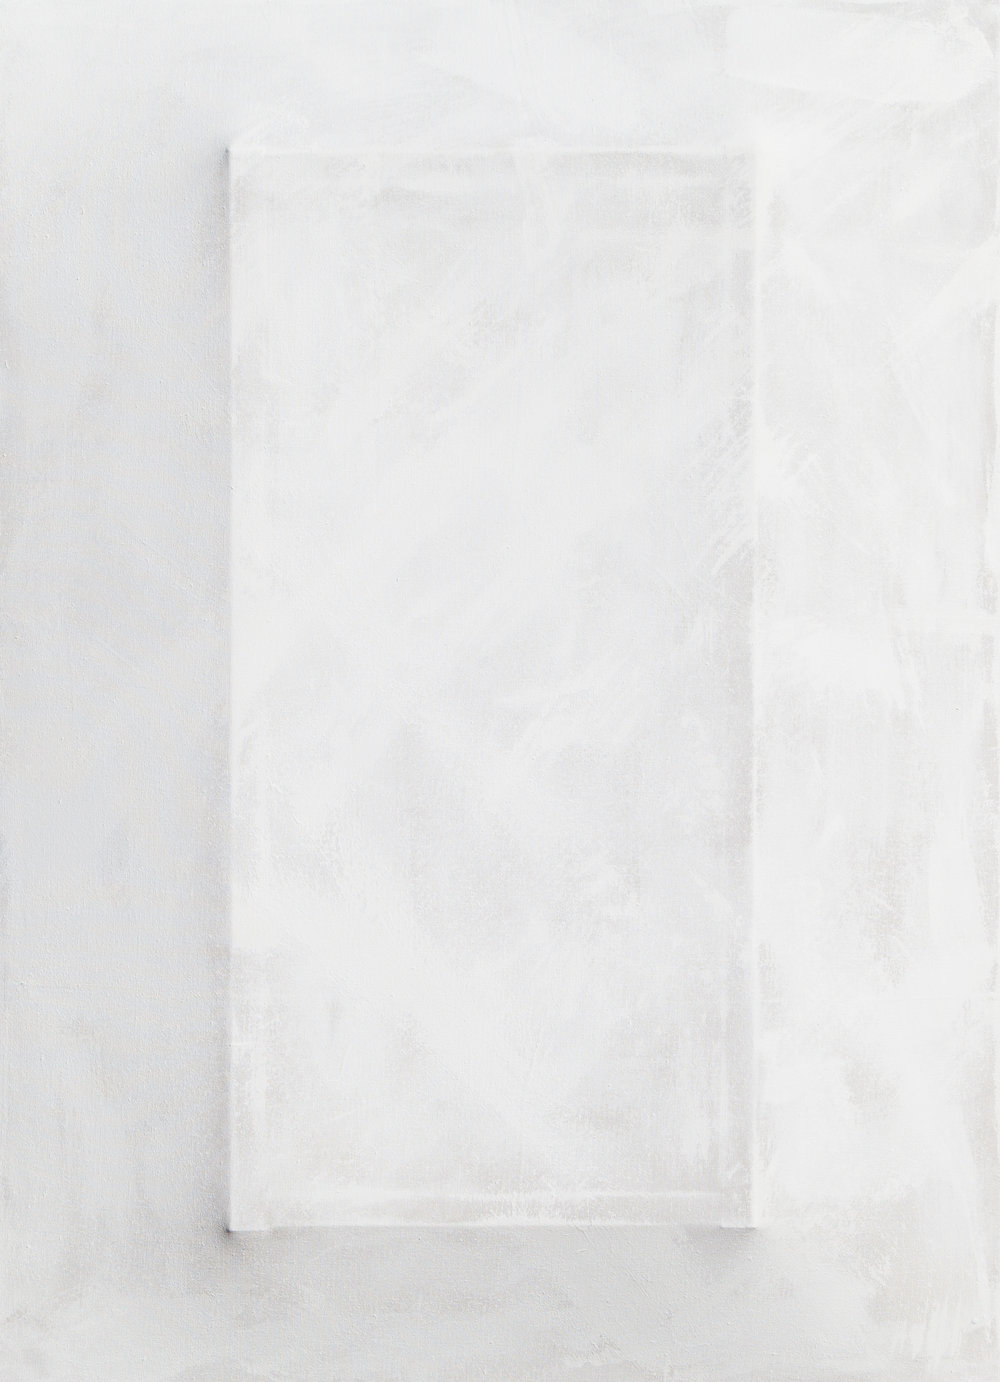 There's a Block in the Void (9598) , 2017, gesso on shaped canvas, 49.5 x 36 x 4.25 in.